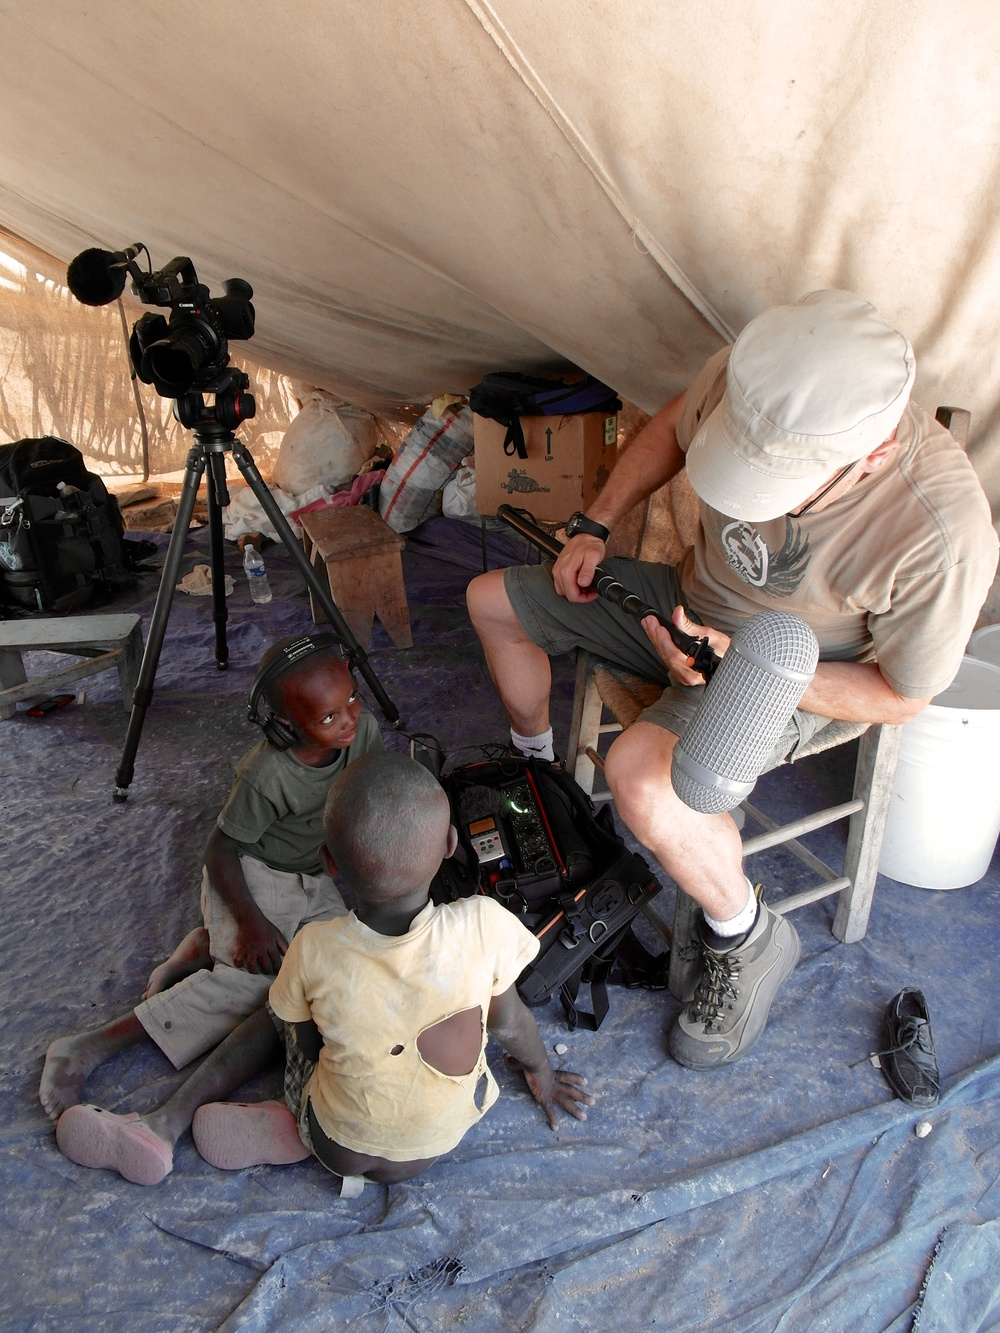 Haiti - Boys in Tent.jpg